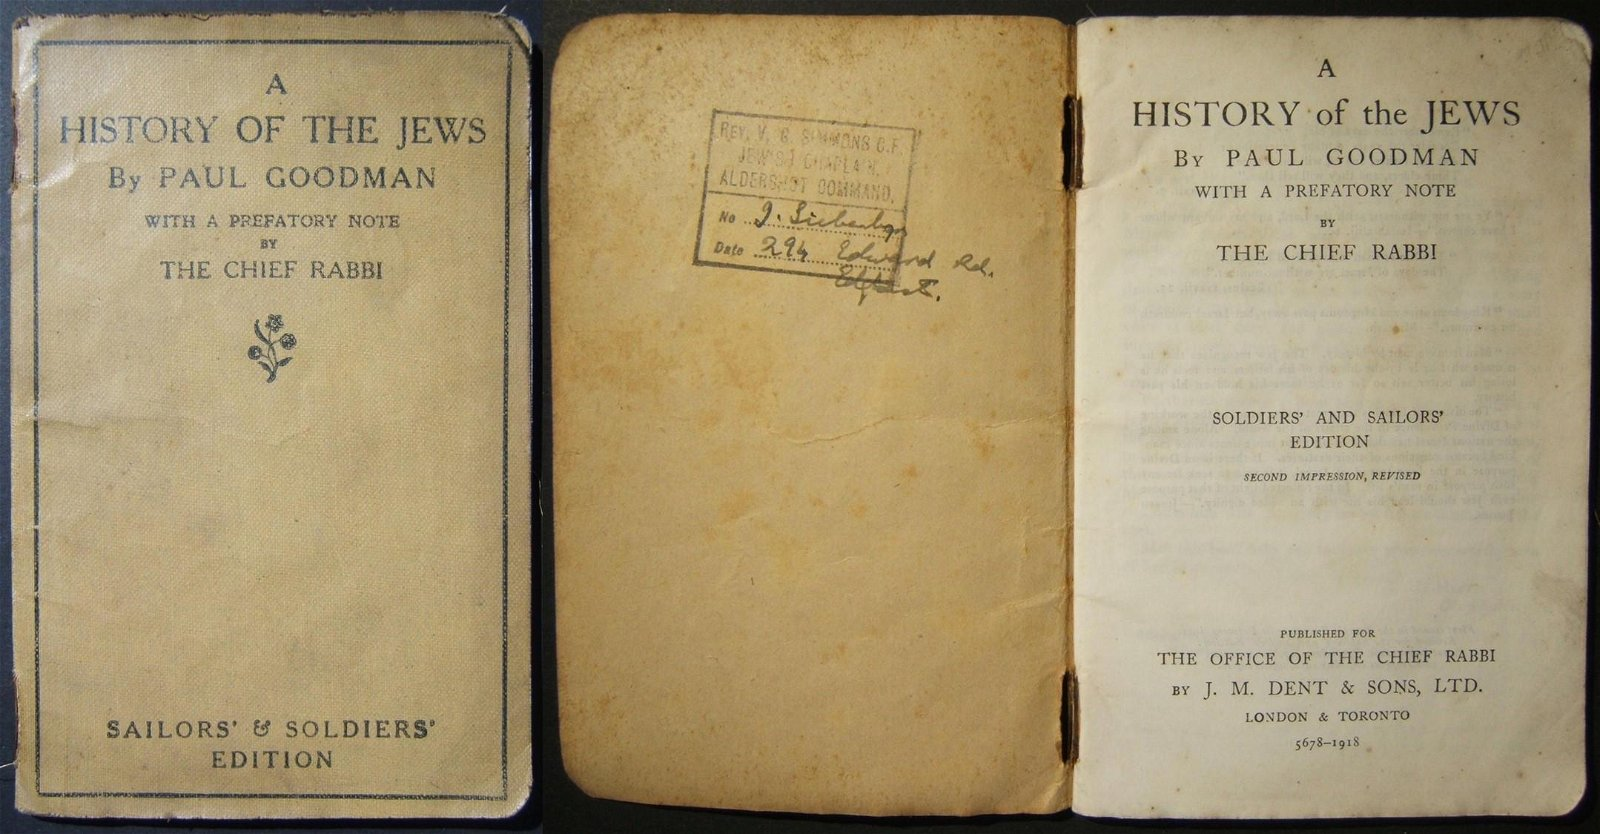 WWI Jewish history book by Paul Goodman for British